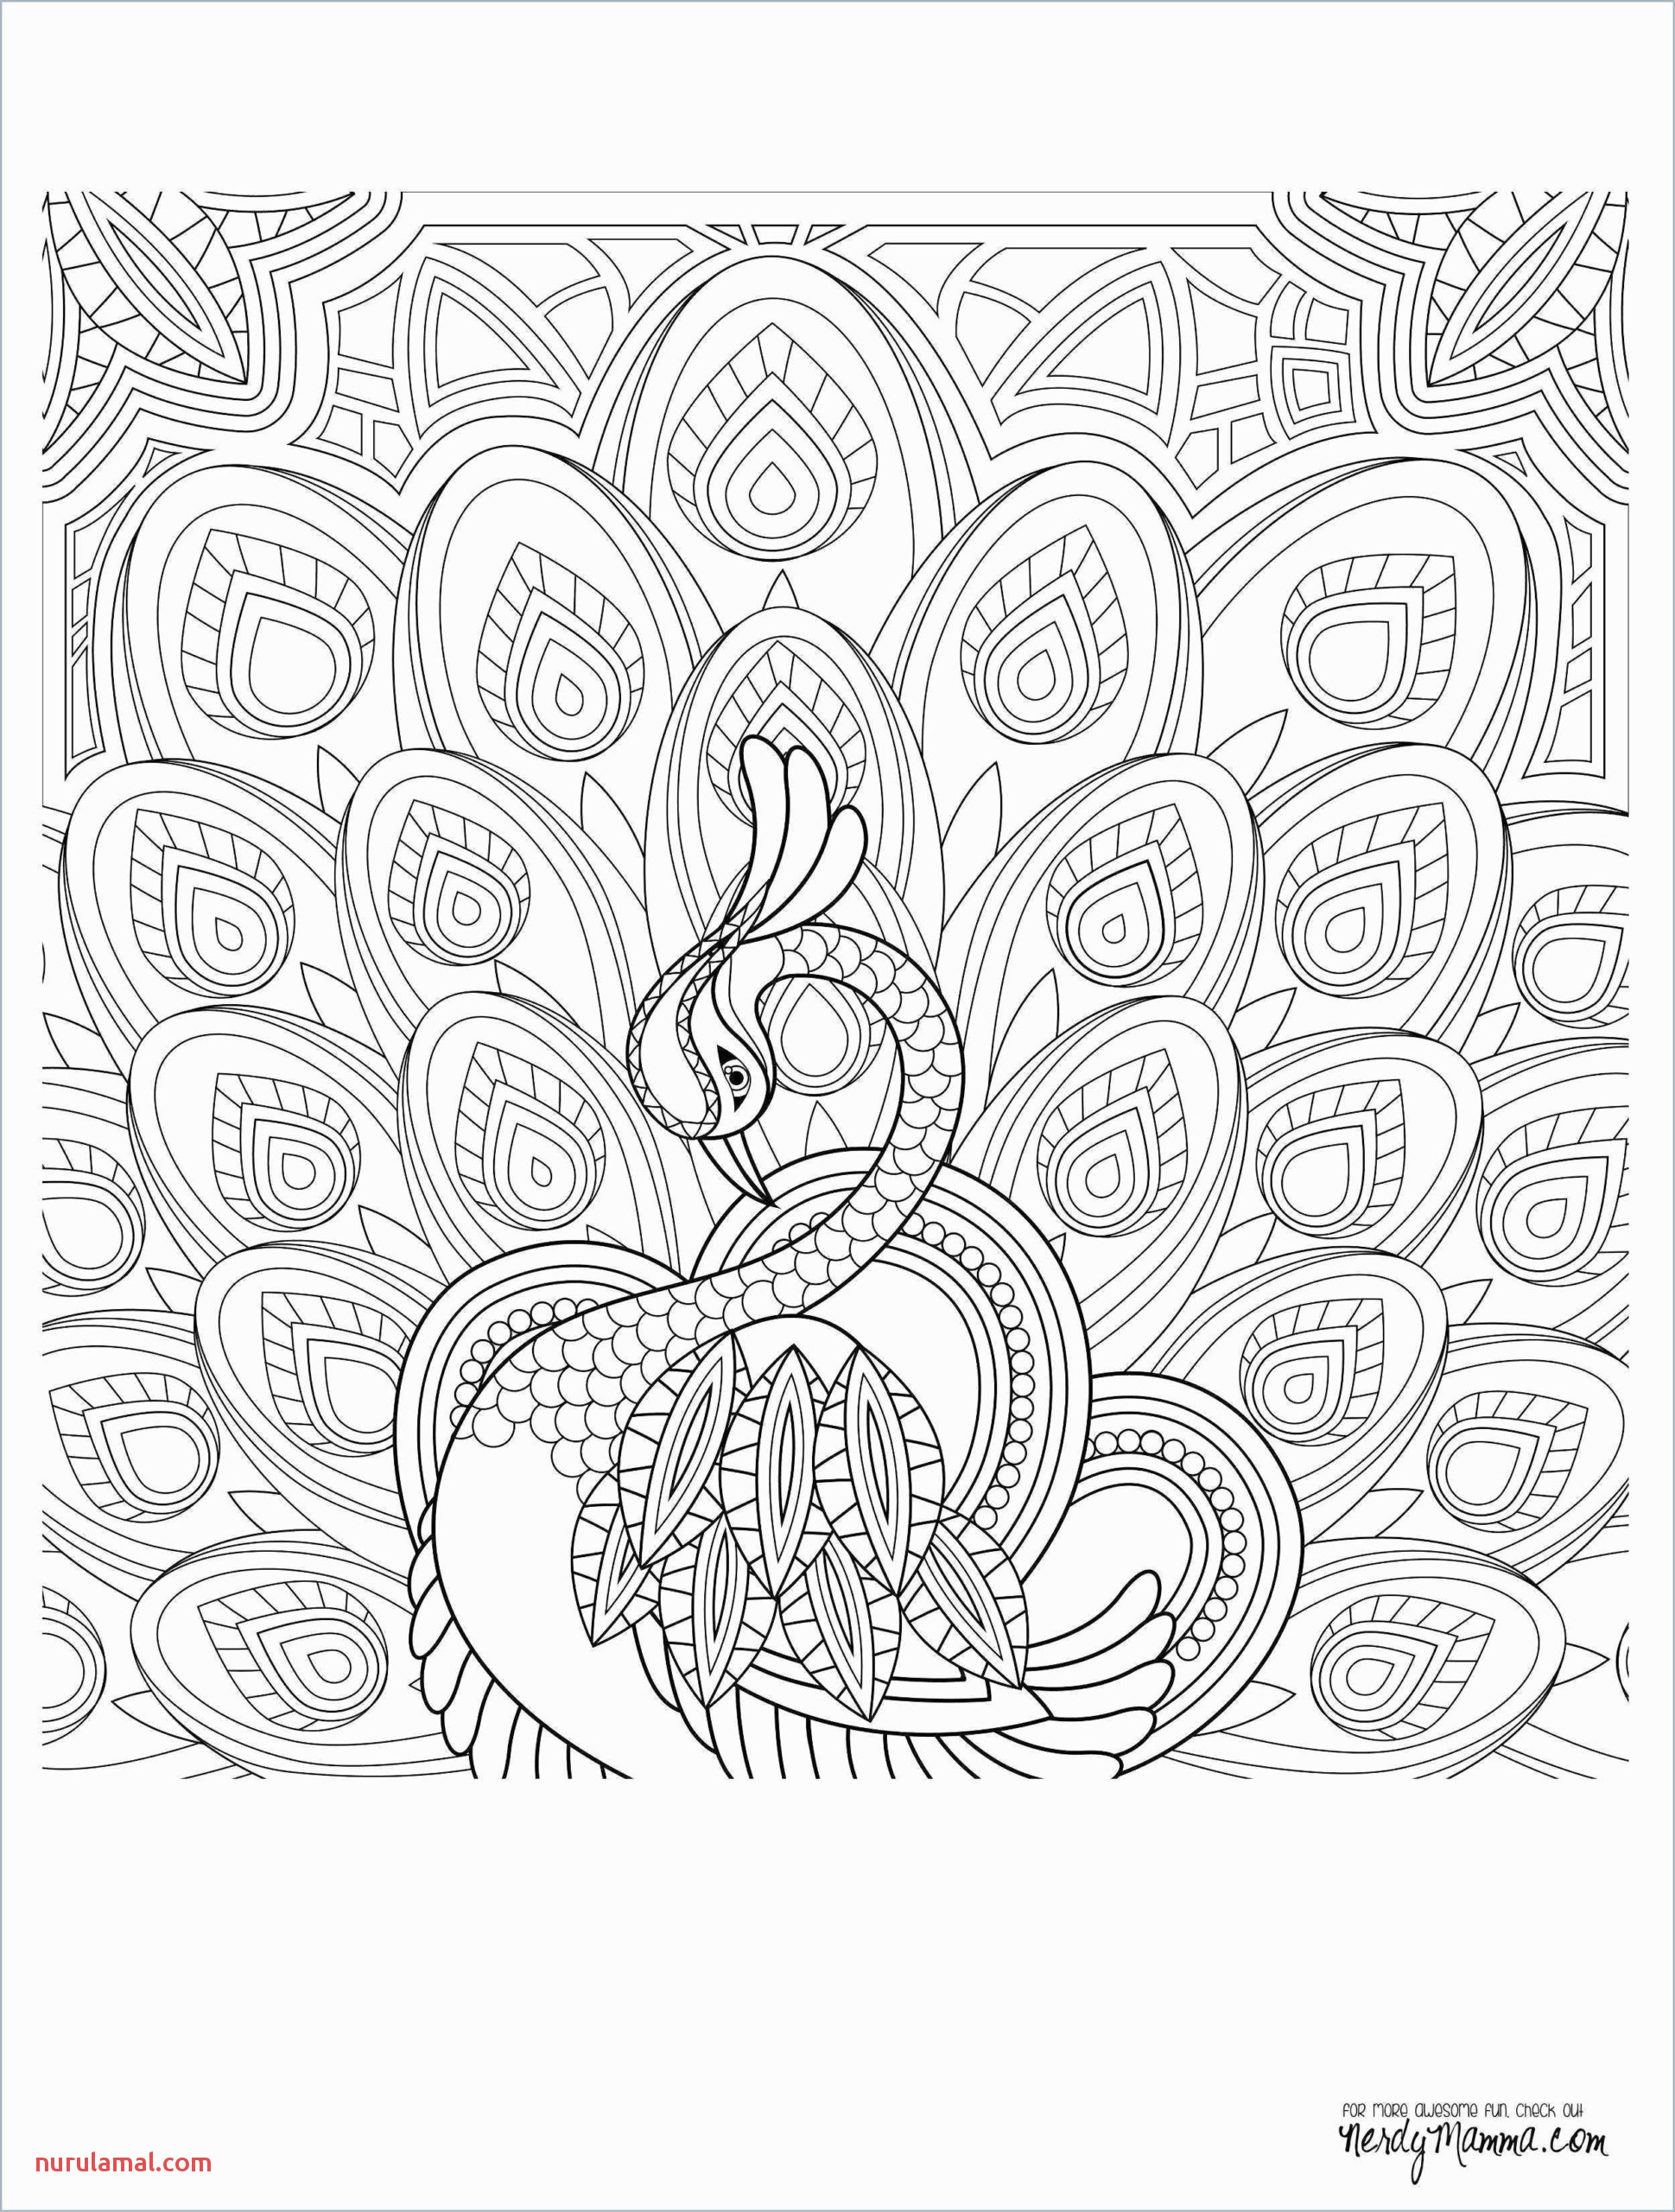 math coloring worksheets 4th grade jake paul pages jersey page mermaid for adults printable girls zodiac barbie drawing book butterfly goosebumps beauty of horror simpsons pilgrim and